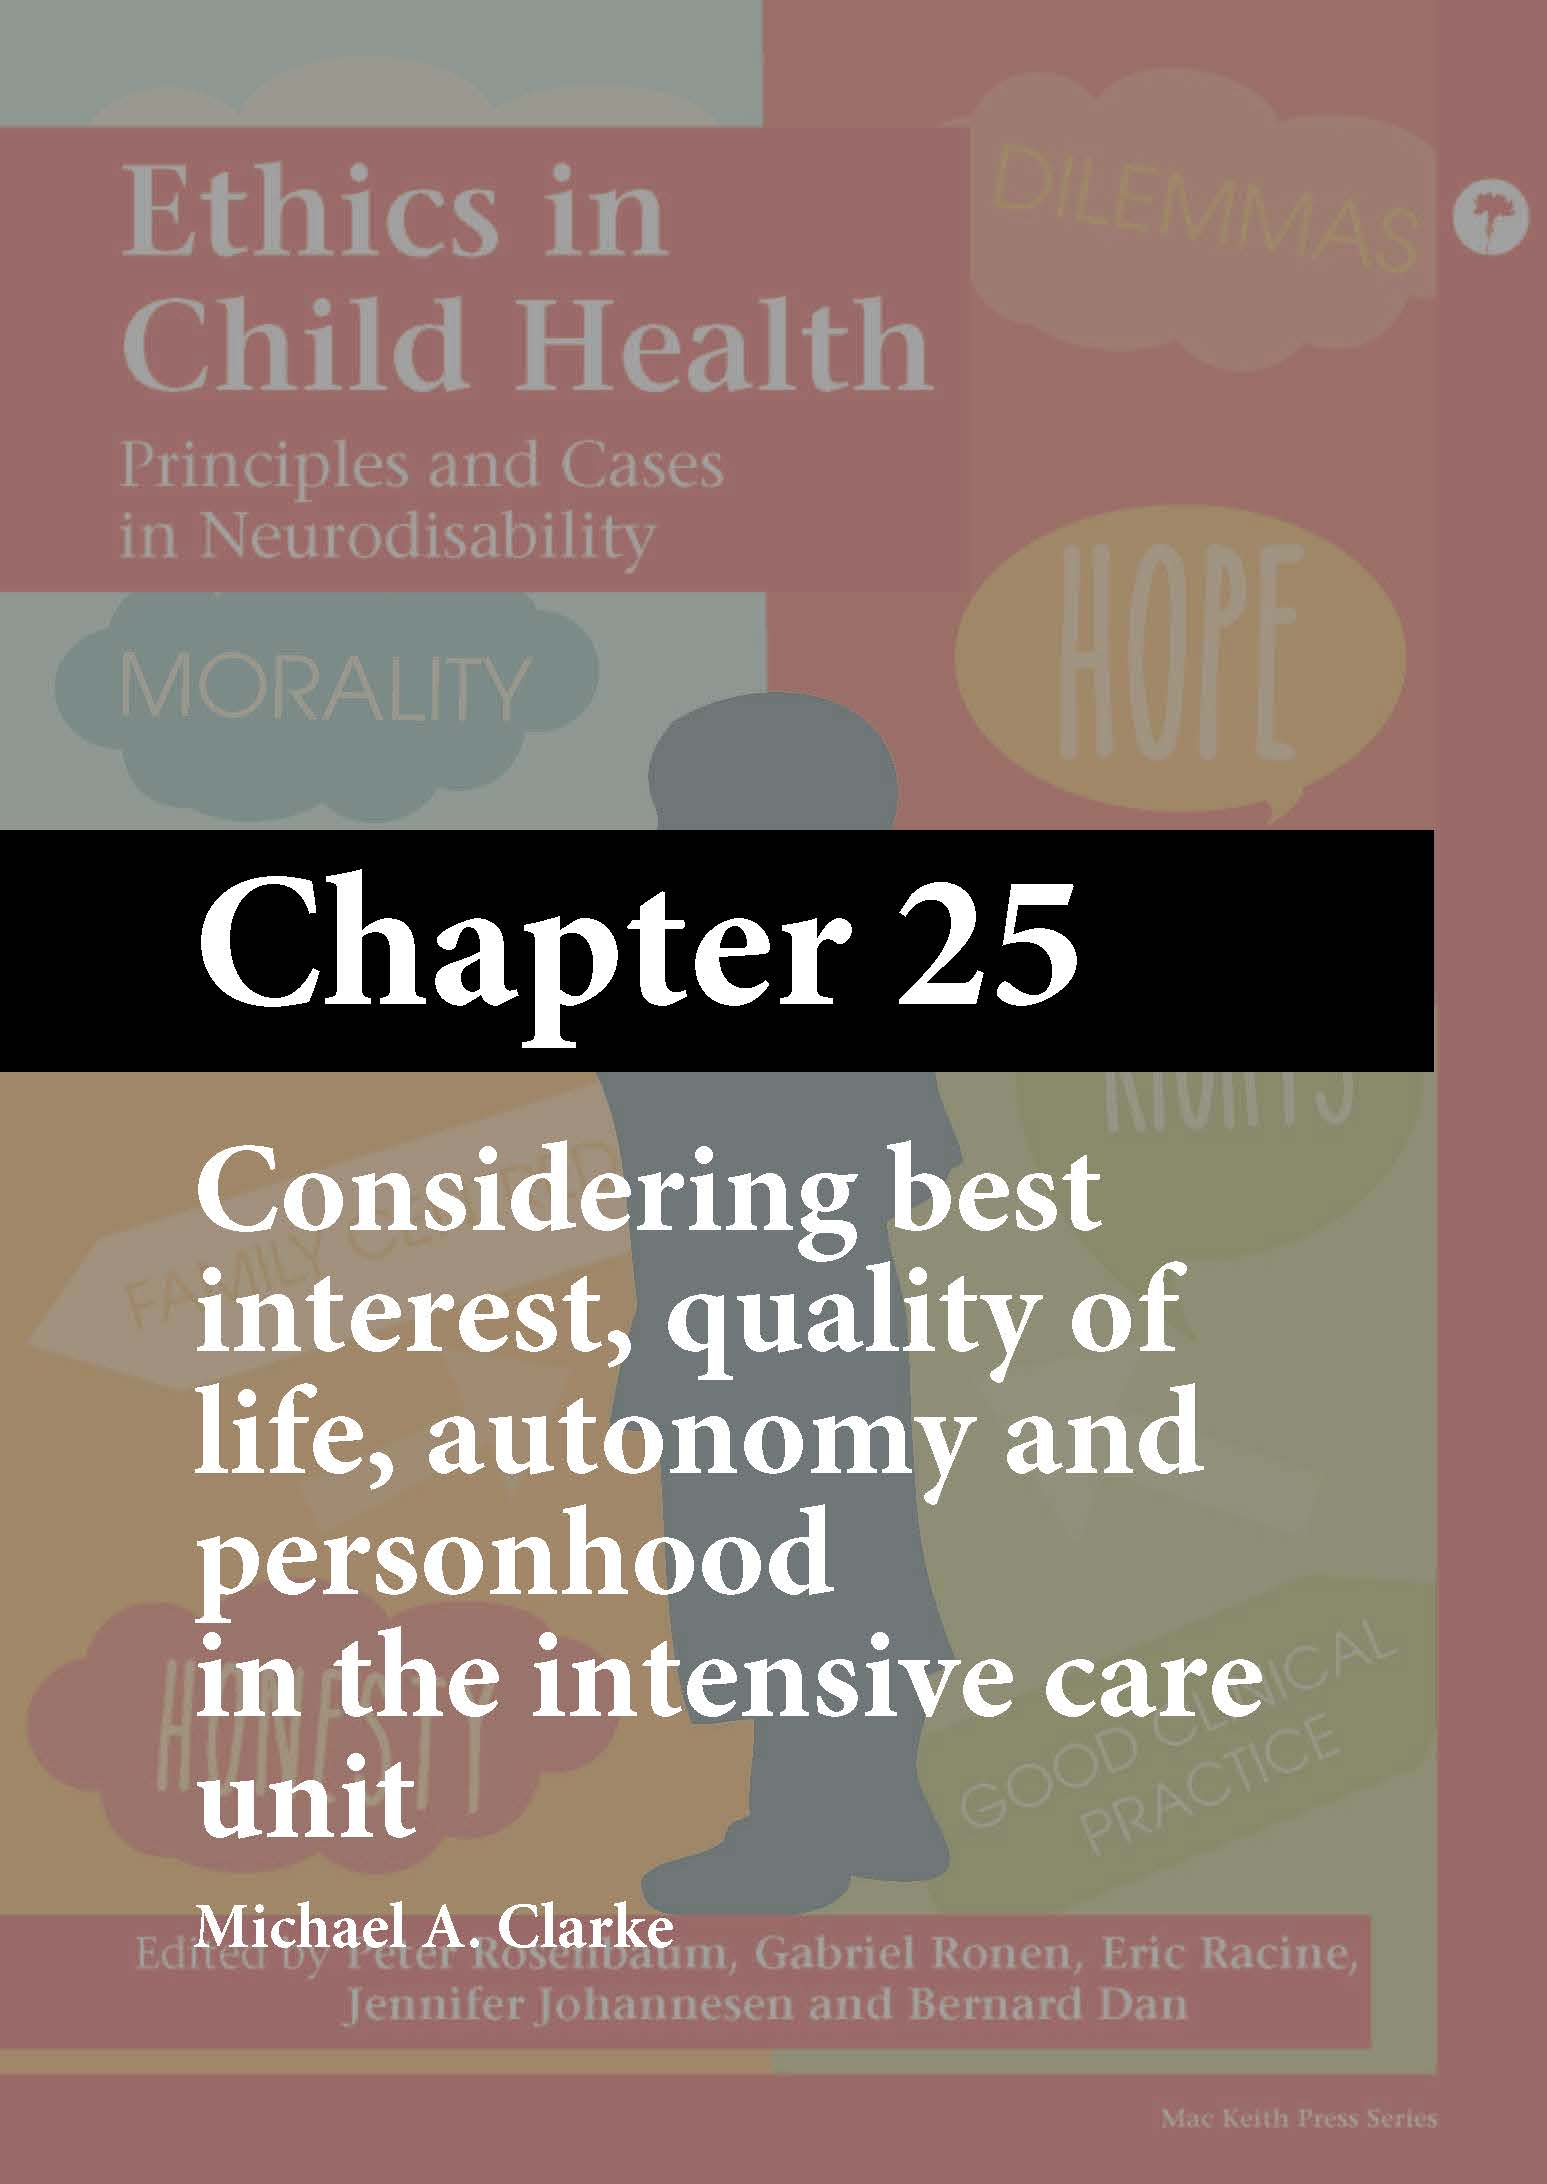 Ethics in Child Health, Rosenbaum, Chapter 25 cover